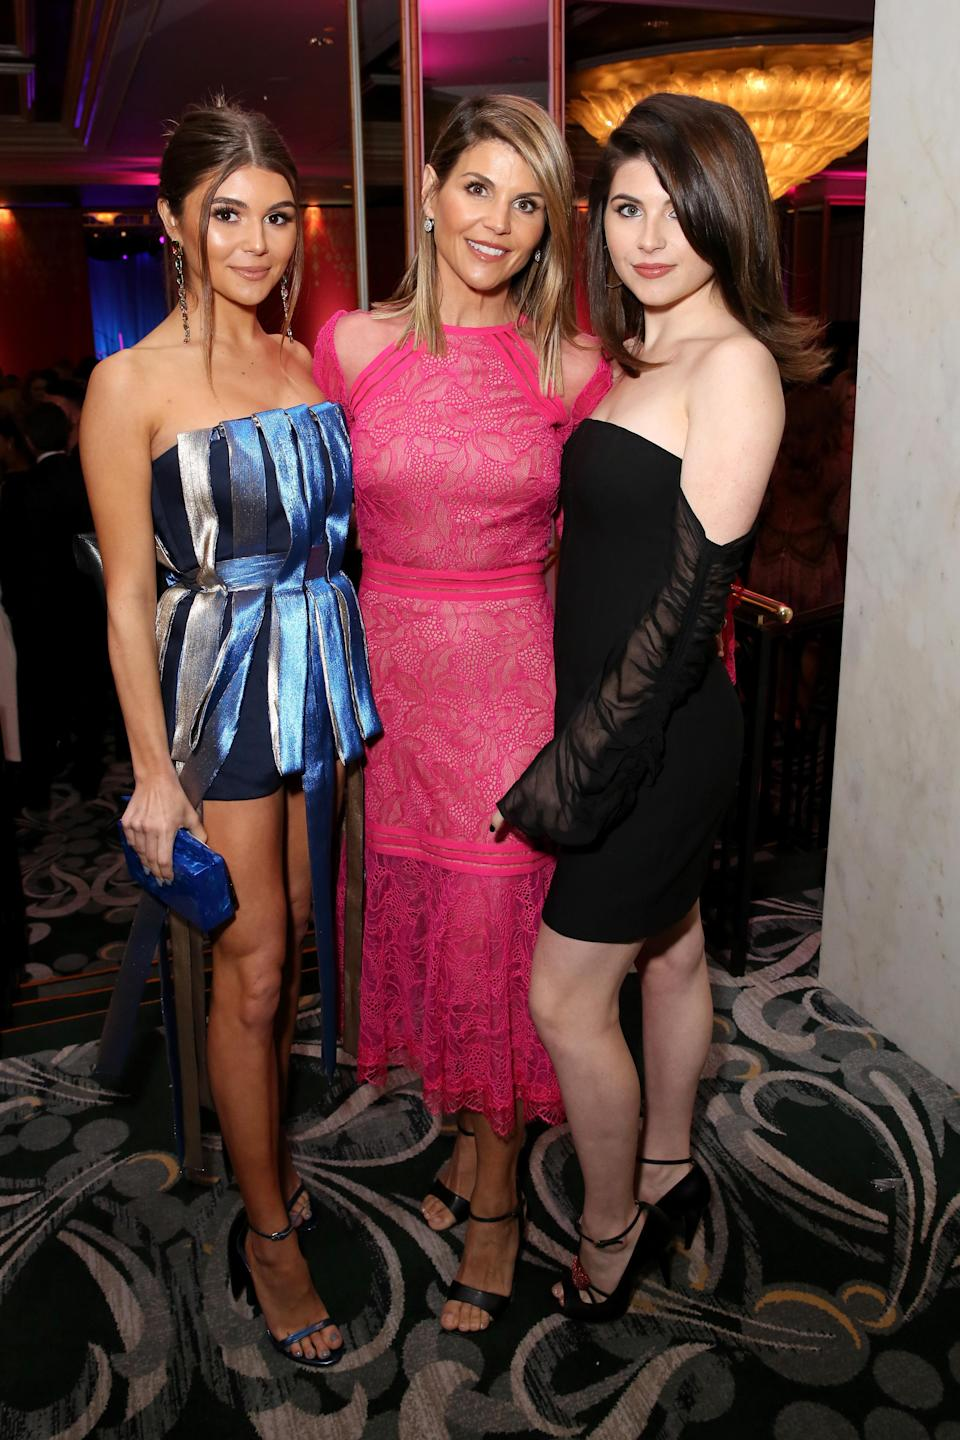 Lori Loughlin with daughters, Olivia Jade Giannulli and Isabella Rose Giannulli, on the red carpet in February. (Photo: Rachel Murray/Getty Images for WCRF)